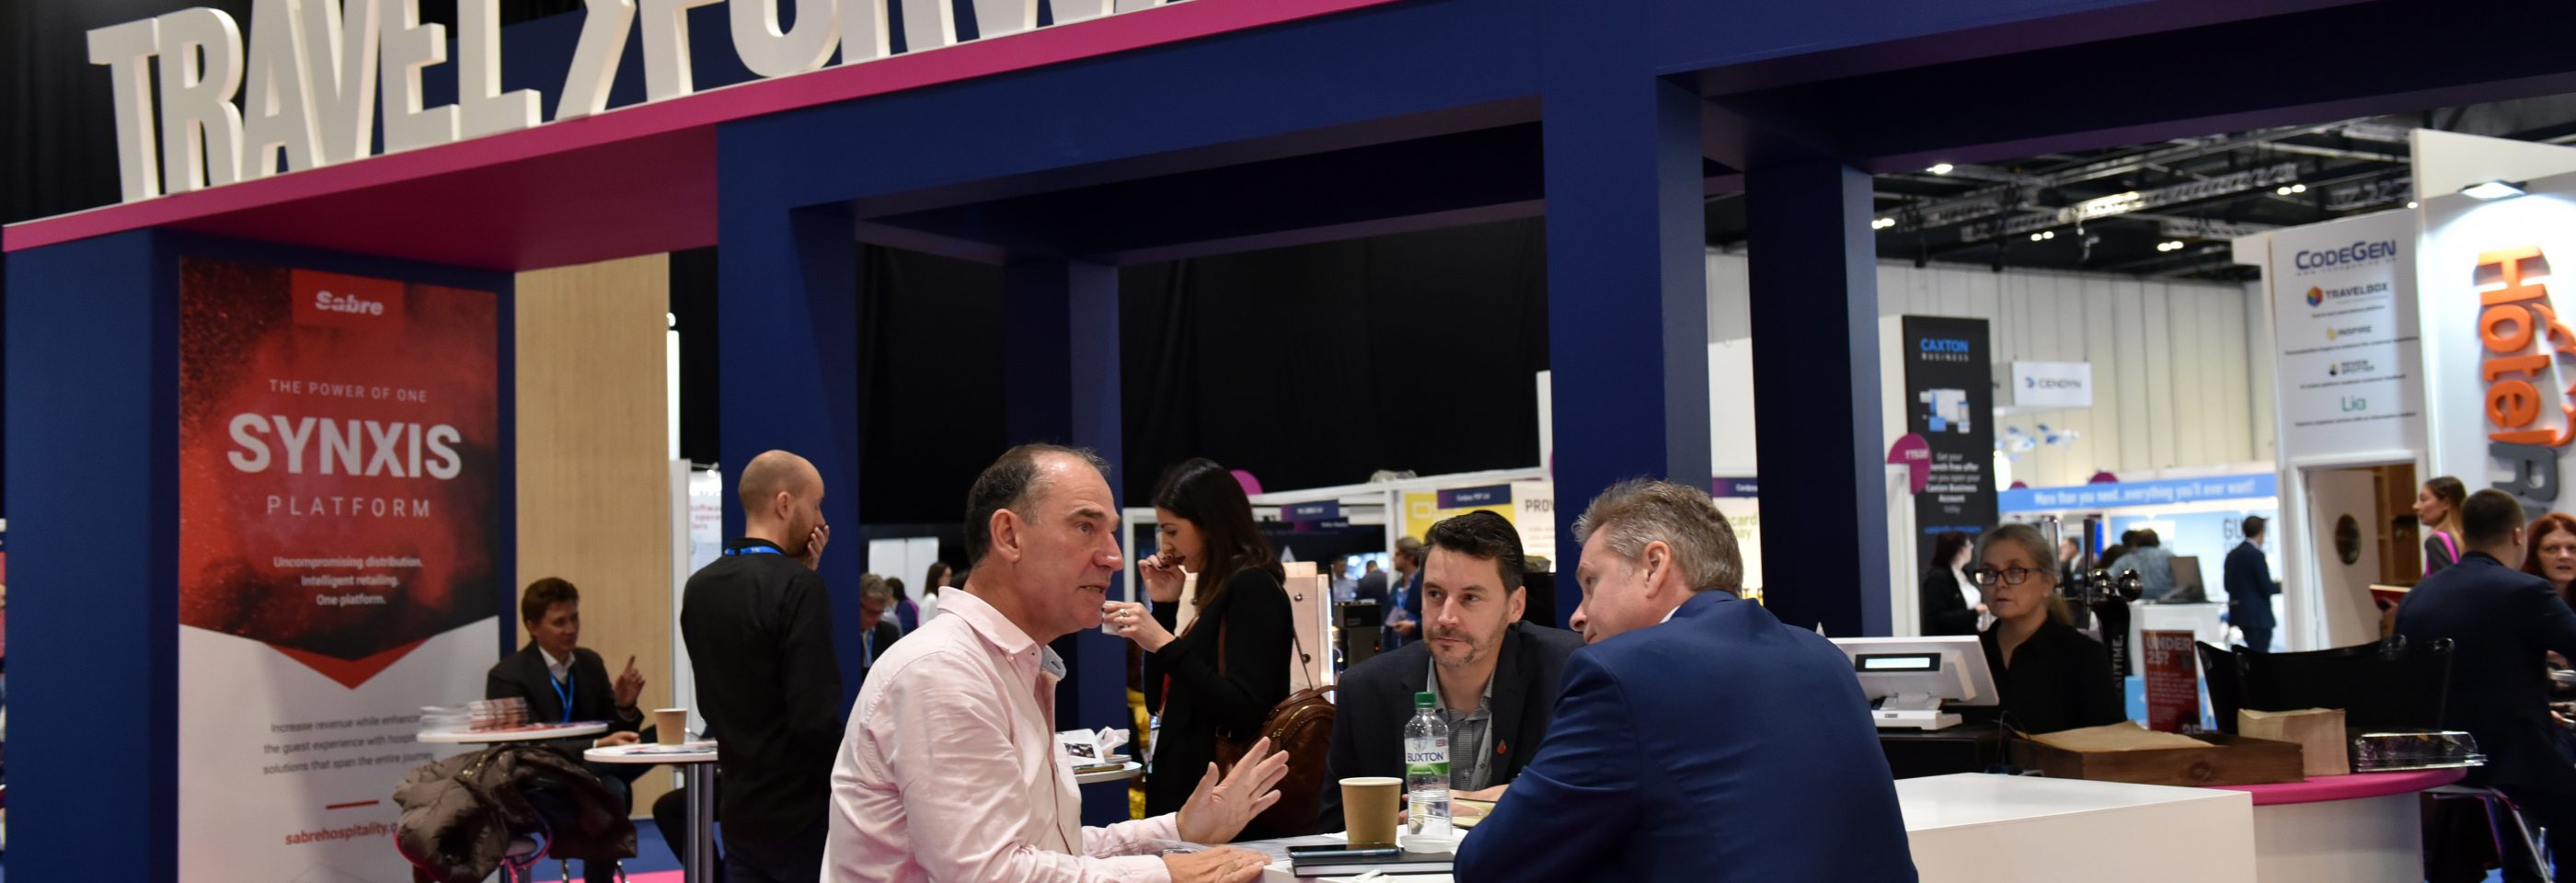 #WTMLDN:Travel Forward points to the future